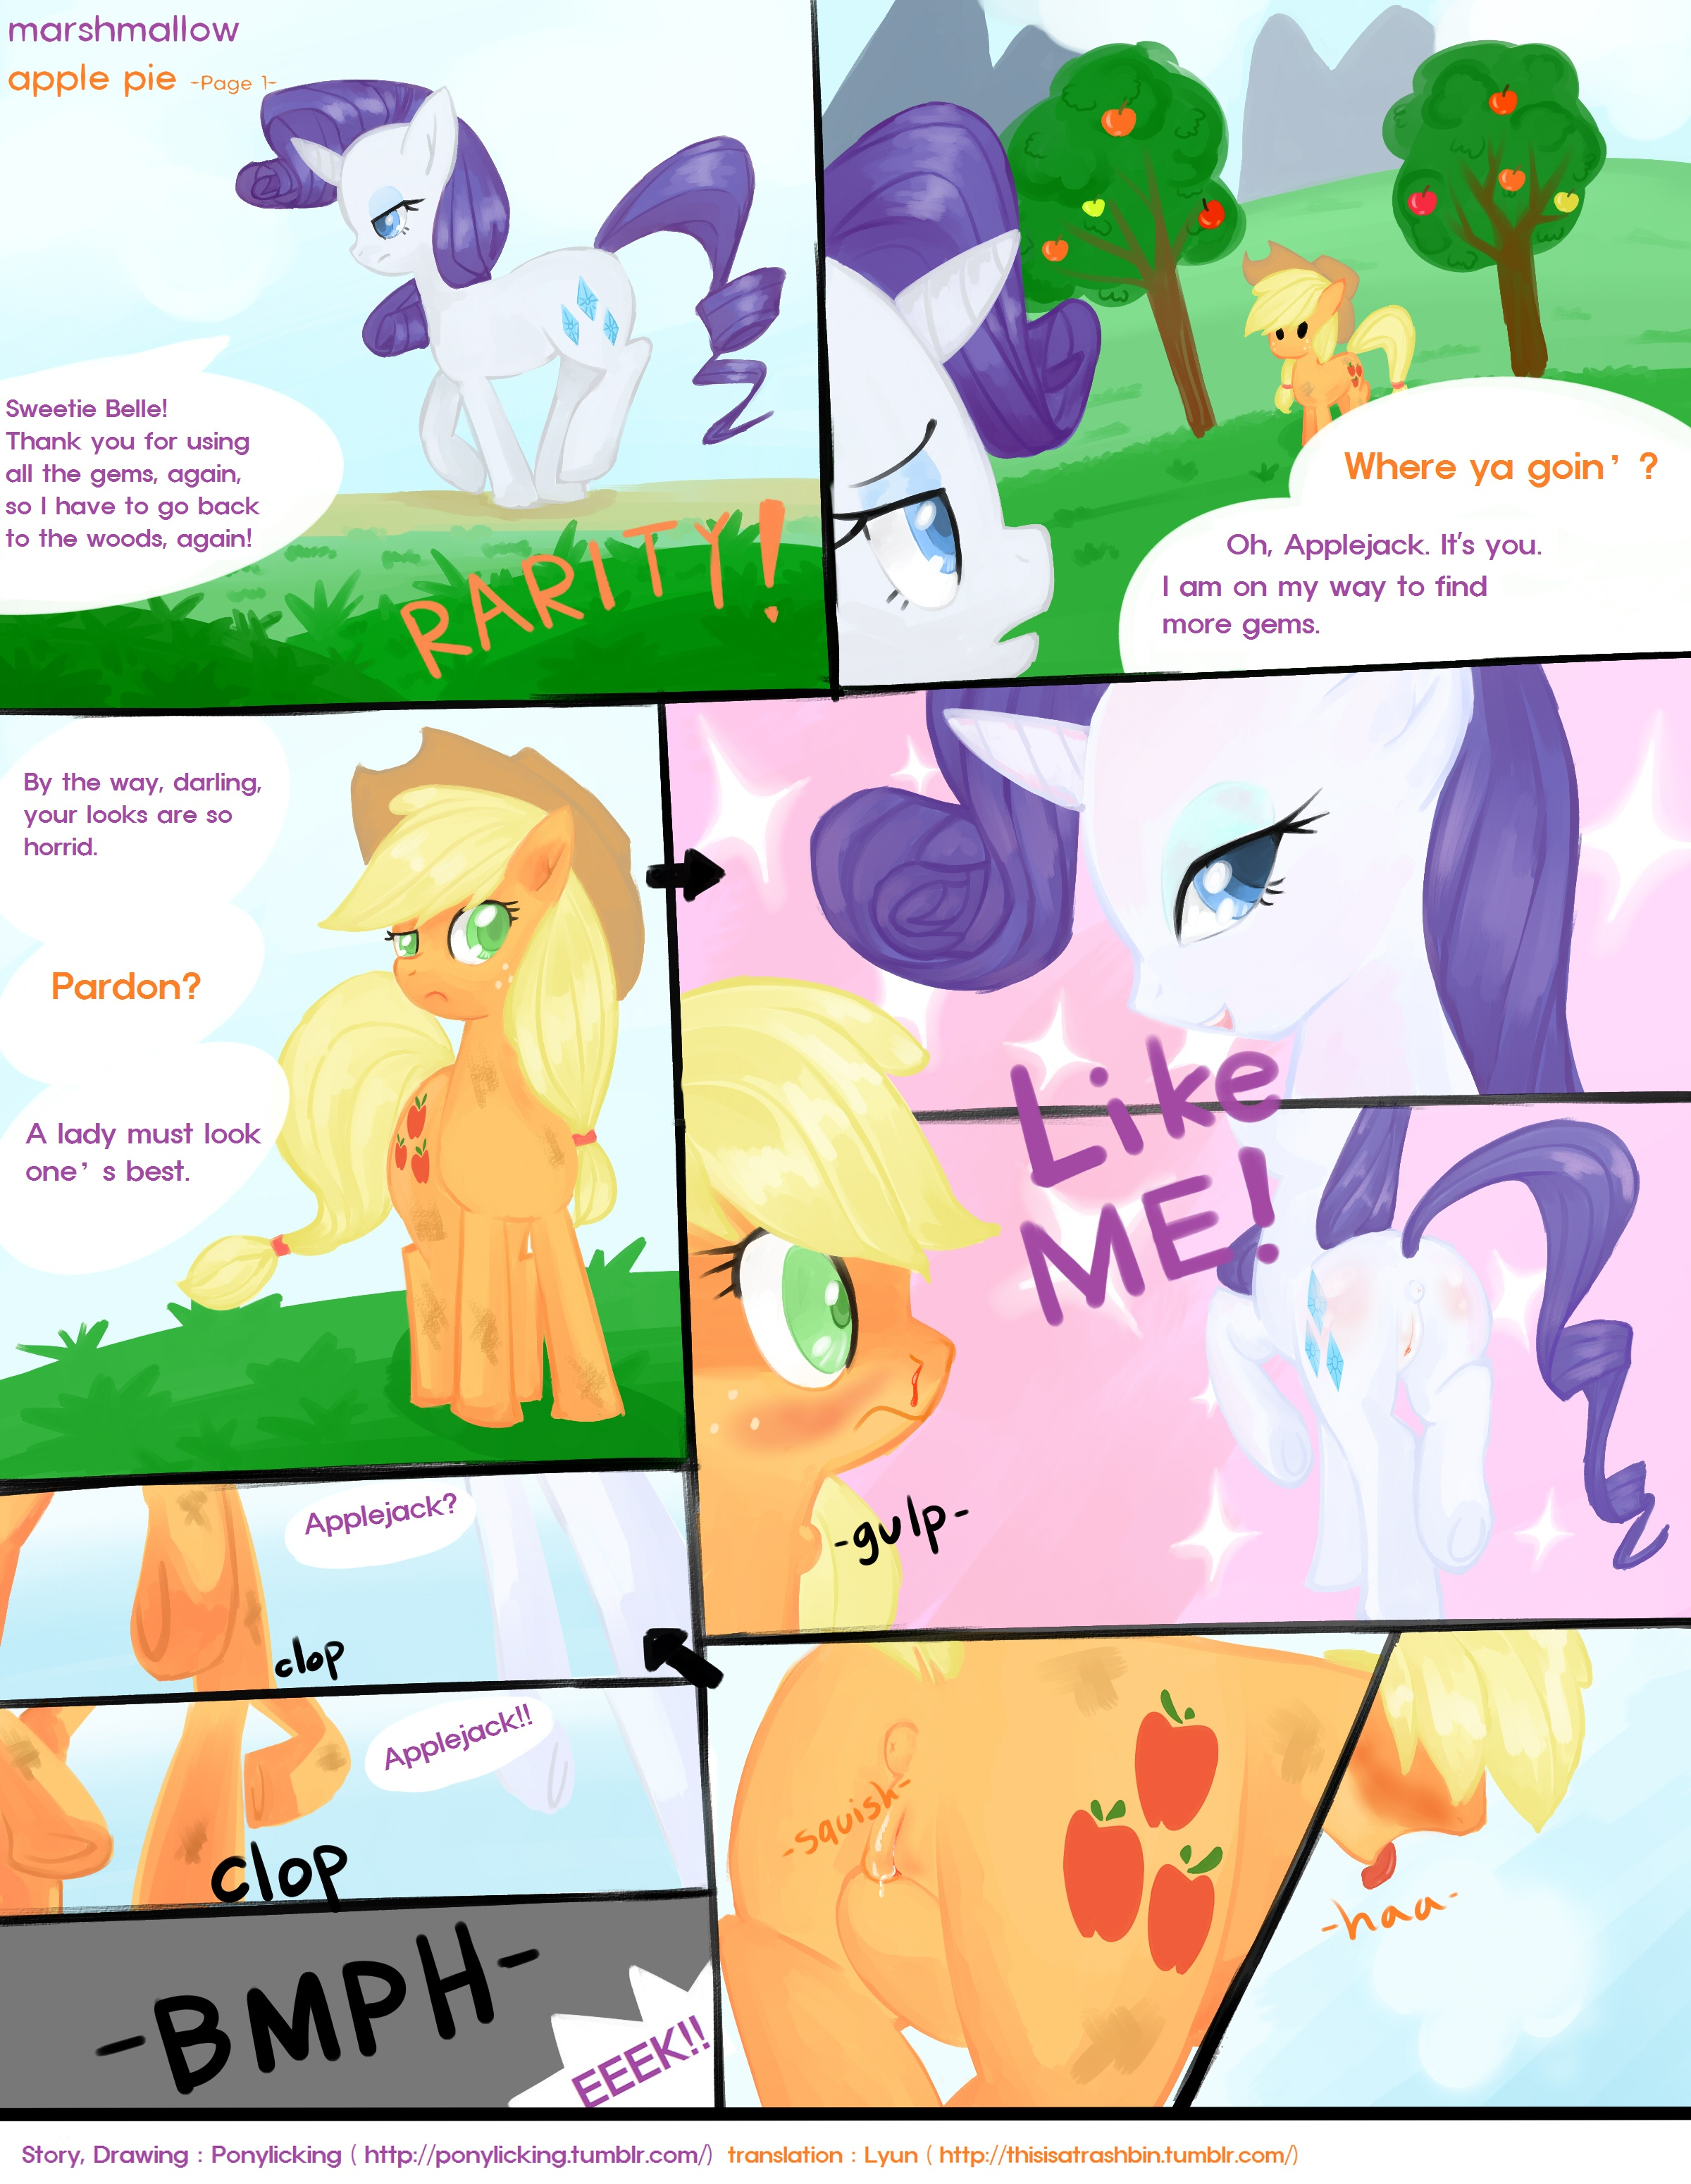 #93293   Applejack, Artist:ponylicking, Comic, Comic:marshmallow Apple Pie,  Earth Pony, Explicit, Female, Females Only, Lesbian, Mare, Marshmallow Apple  Pie ...